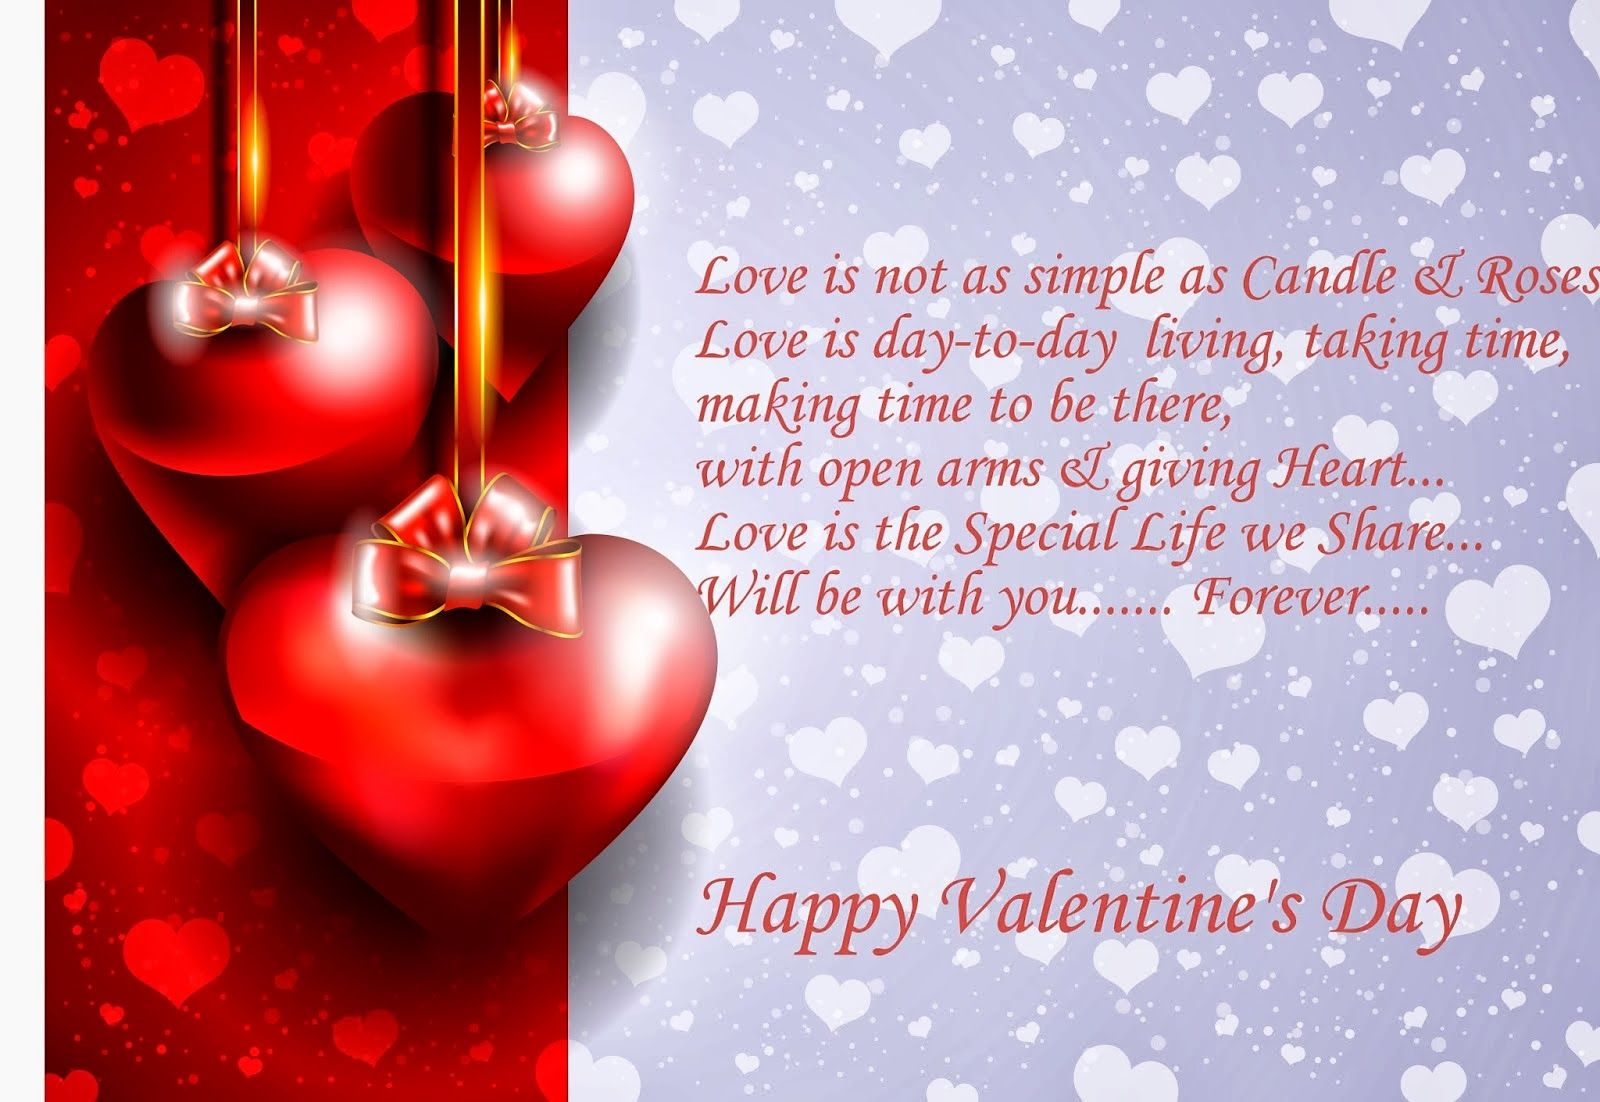 2015 happy valentines day greetings hd wallpaper quotes 2015 happy valentines day greetings hd wallpaper m4hsunfo Images